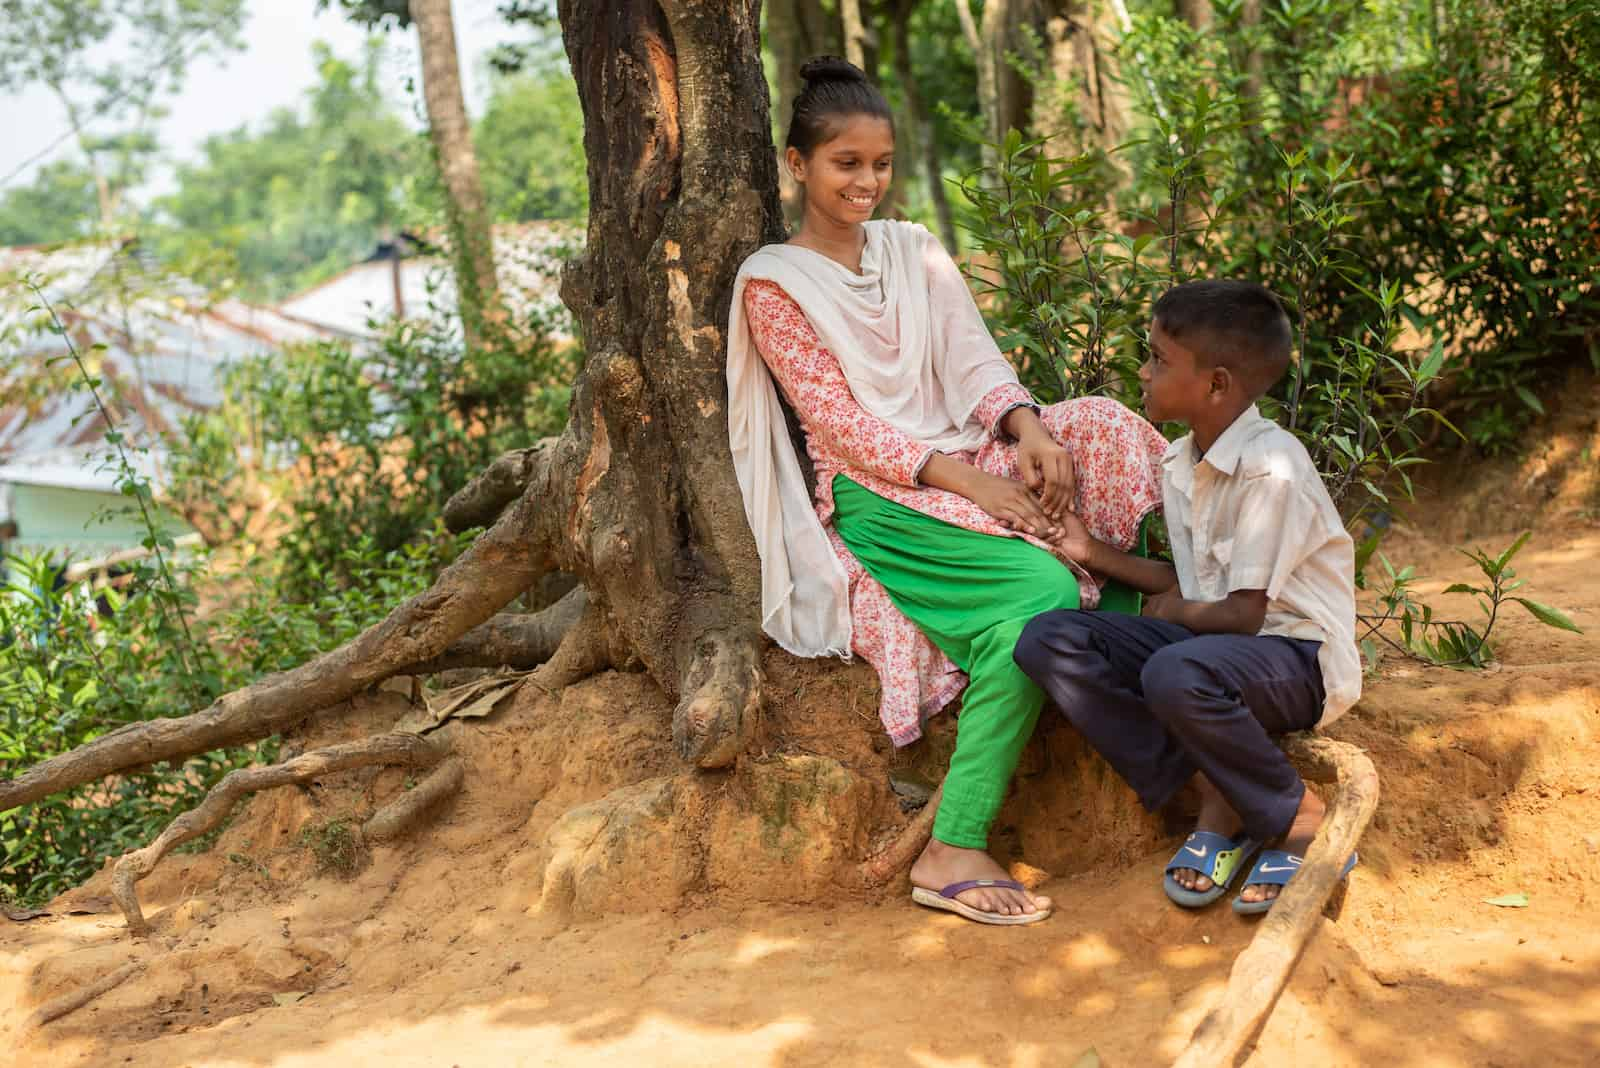 A girl wearing green pants, a pink shirt and a white scarf leans against the trunk of a large tree. A young boy wearing jeans and a white button-up shirt kneels below her as they smile at each other.